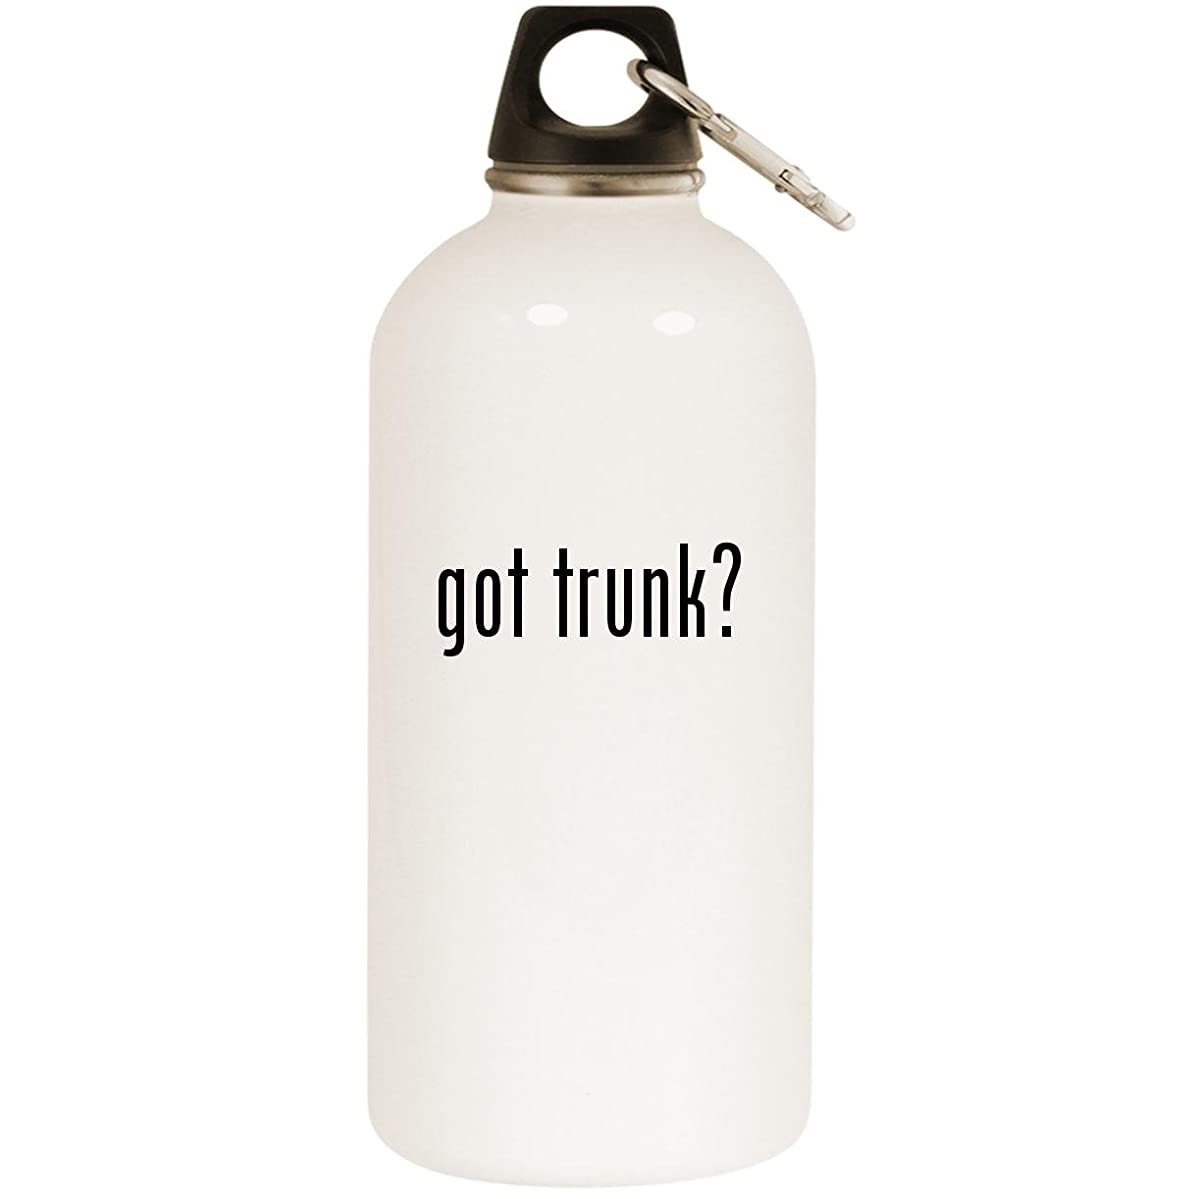 Molandra Products got Trunk? - White 20oz Stainless Steel Water Bottle with Carabiner